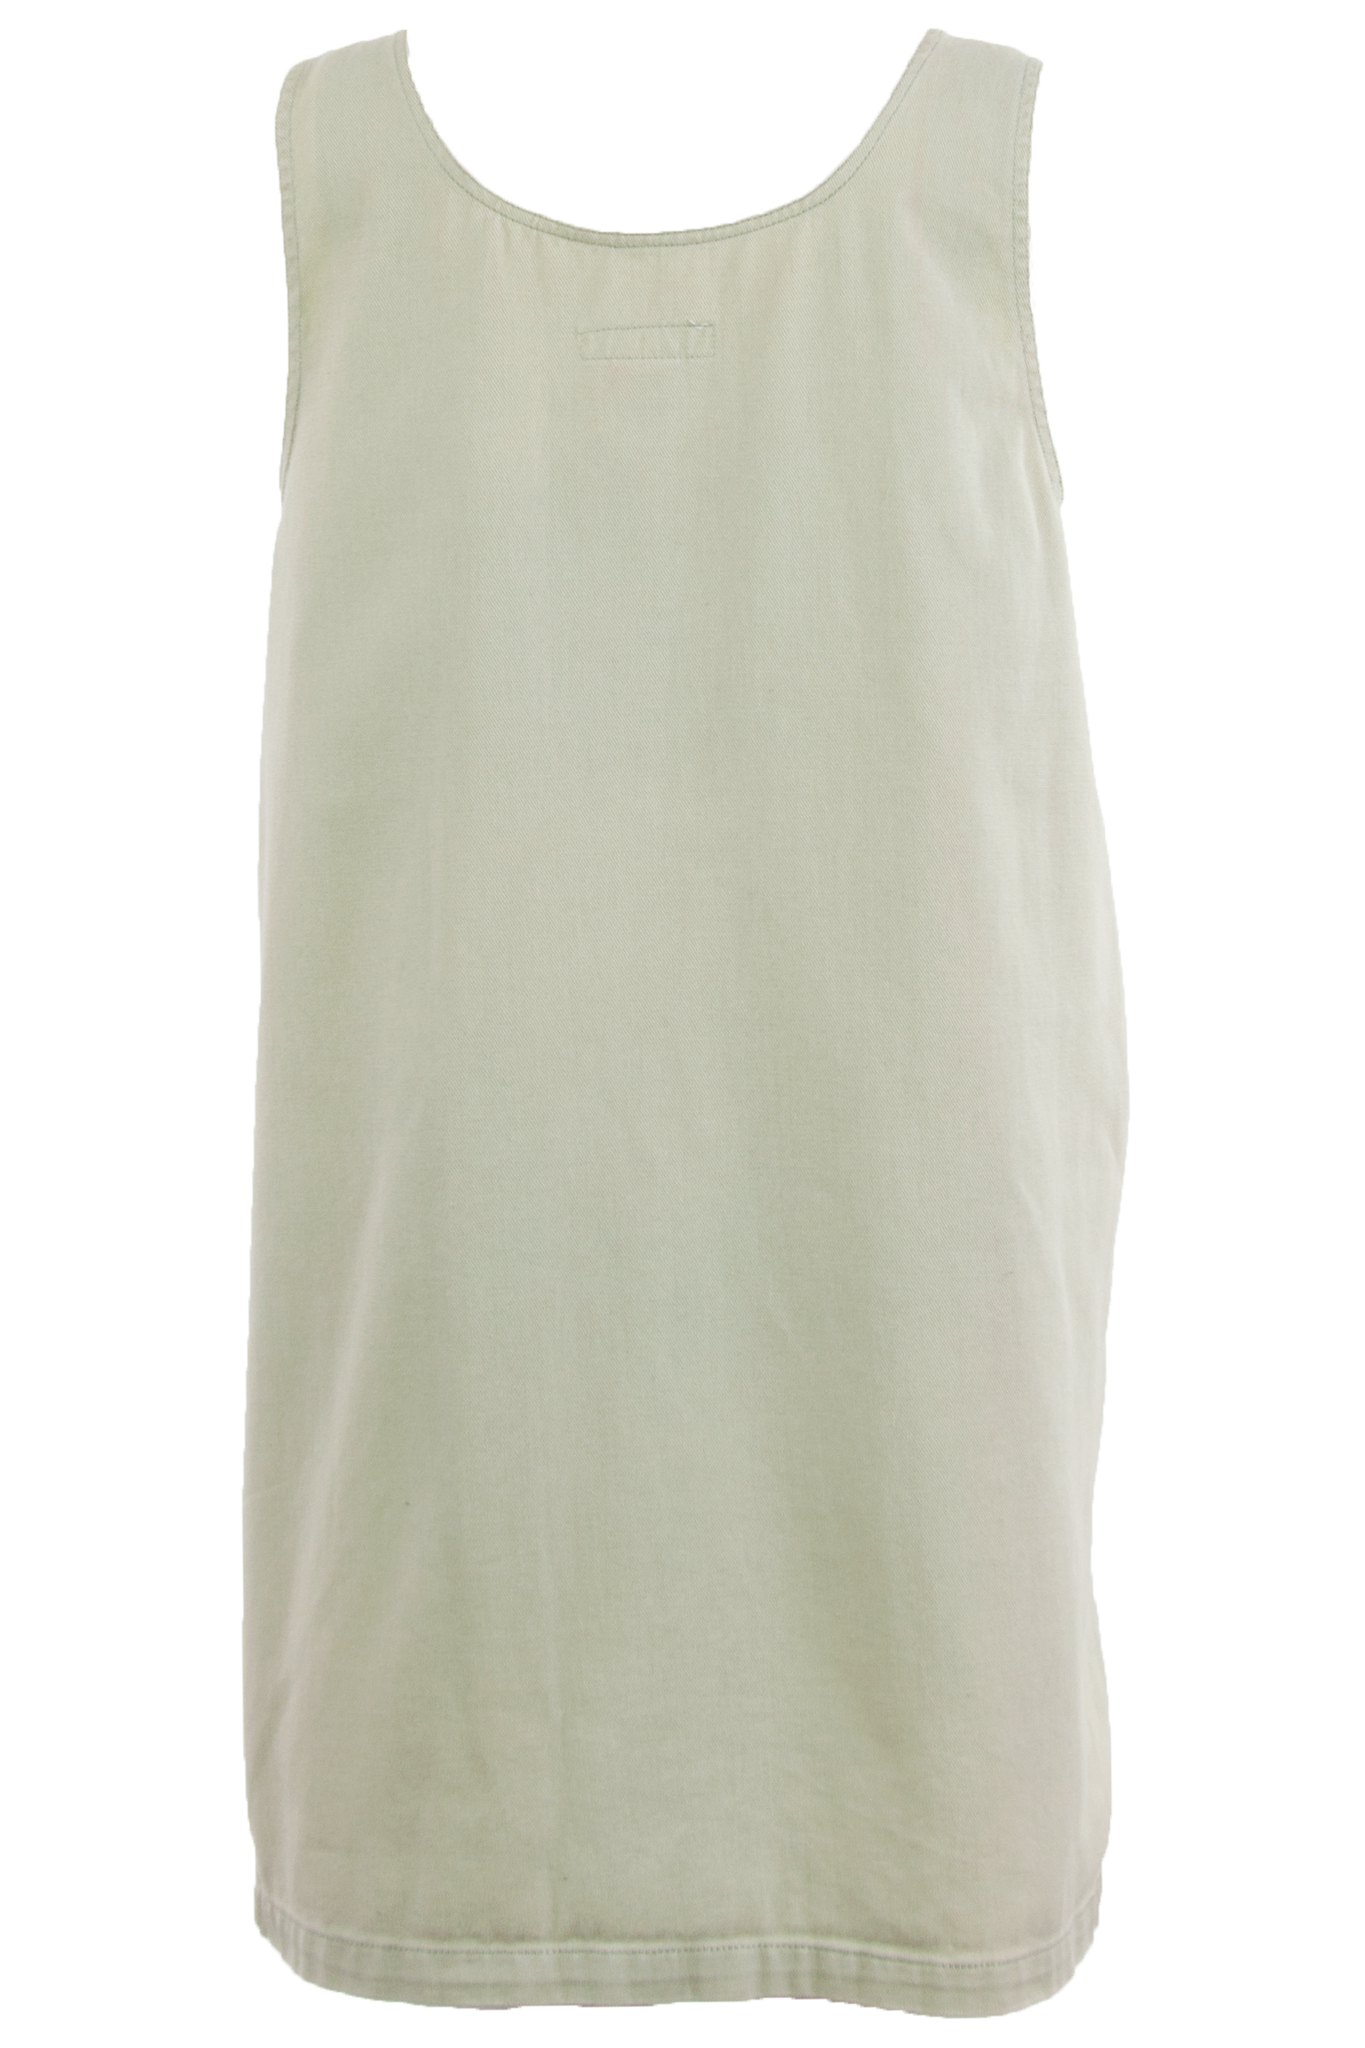 sleeveless dress in olive green